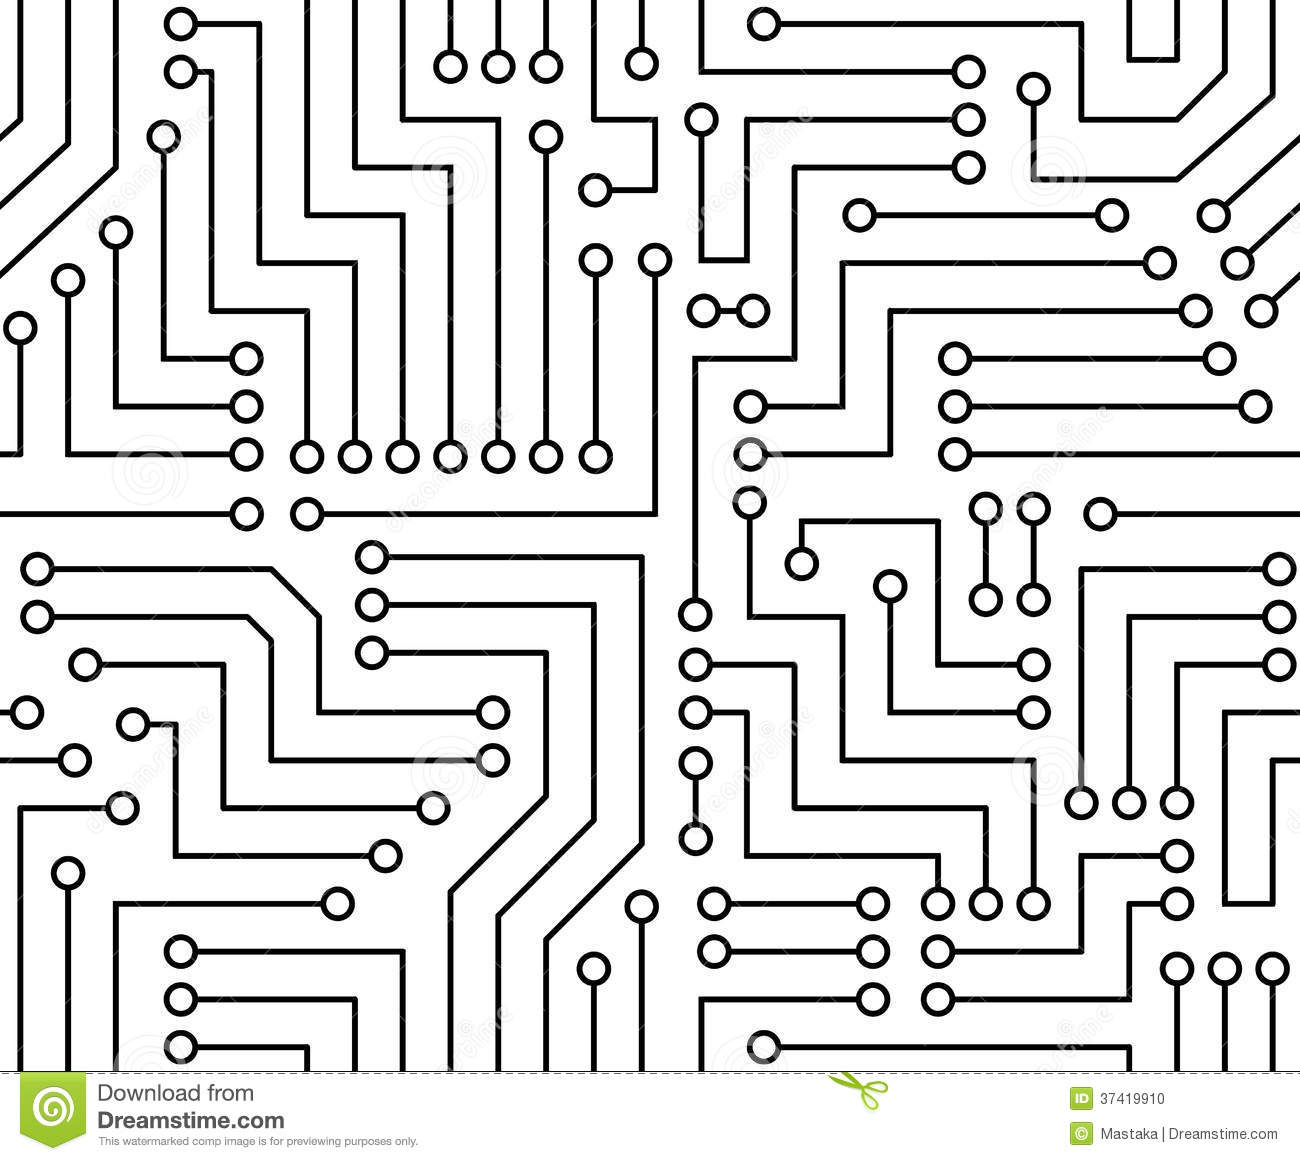 printed circuit board diagram the wiring diagram printed circuit board design vidim wiring diagram circuit diagram